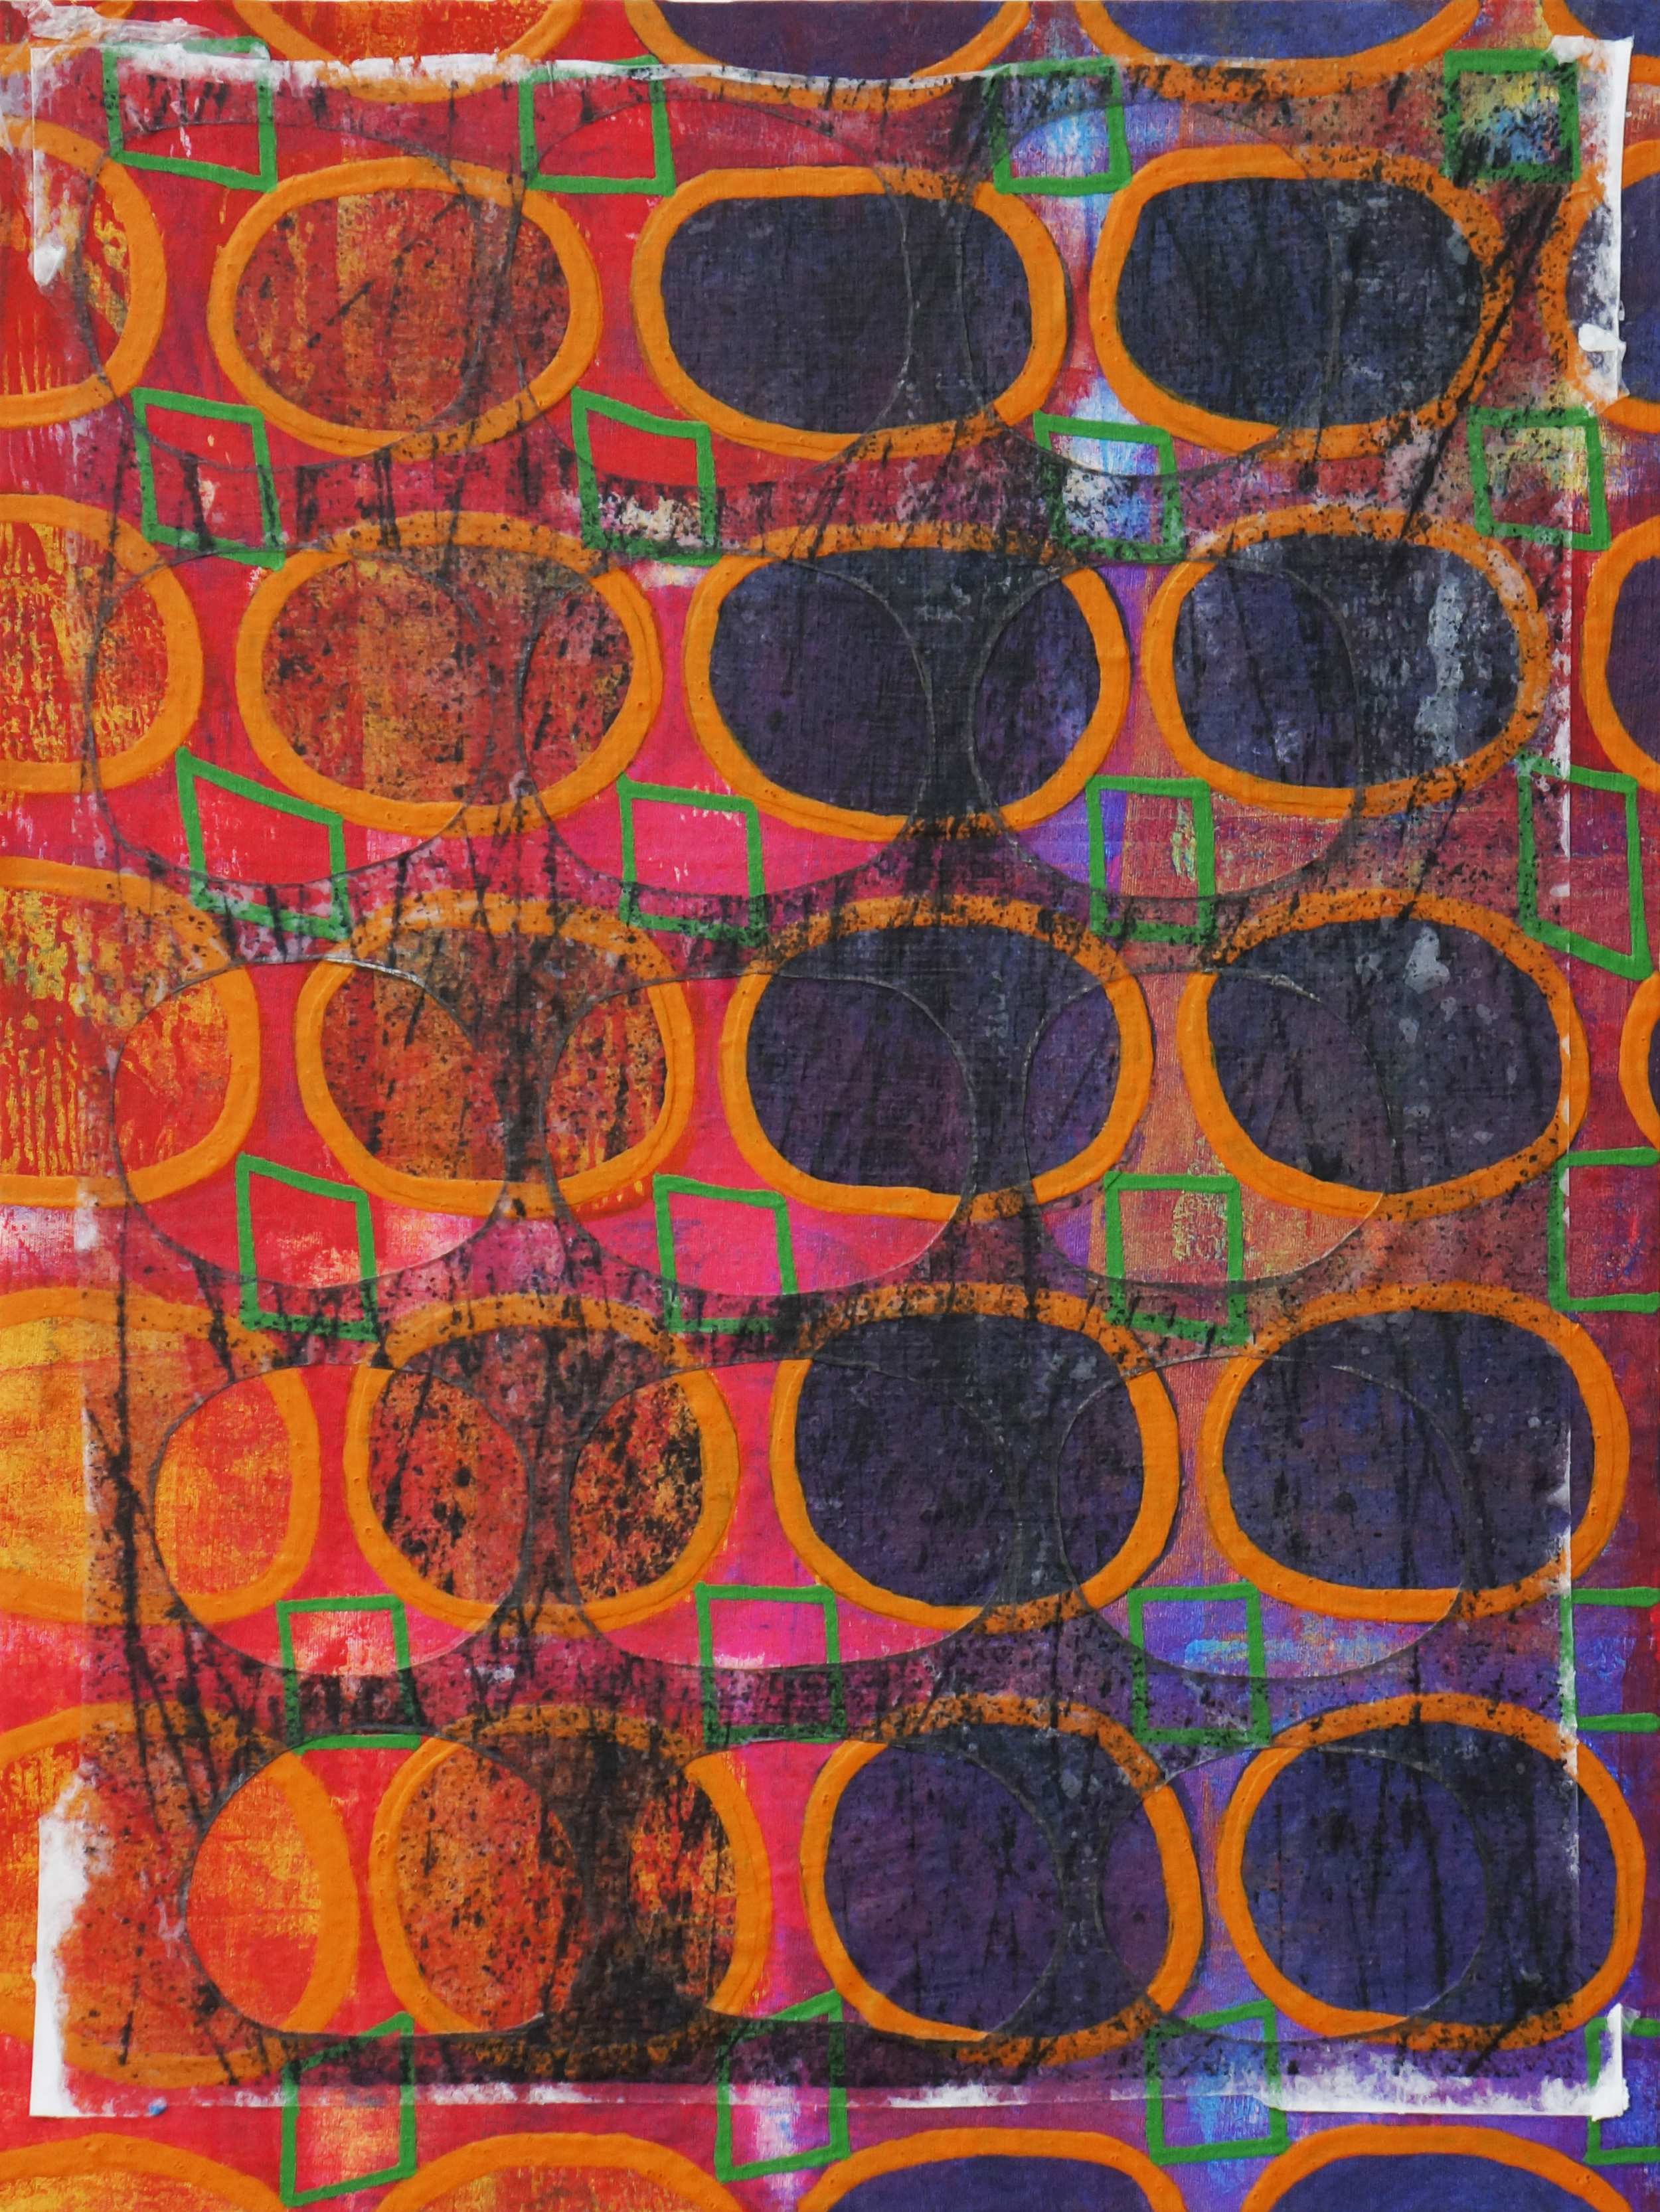 Jeanne Williamson, Bubbles and Cracks on Ice on Fences #10 , mixed media on cradled board, 14x14